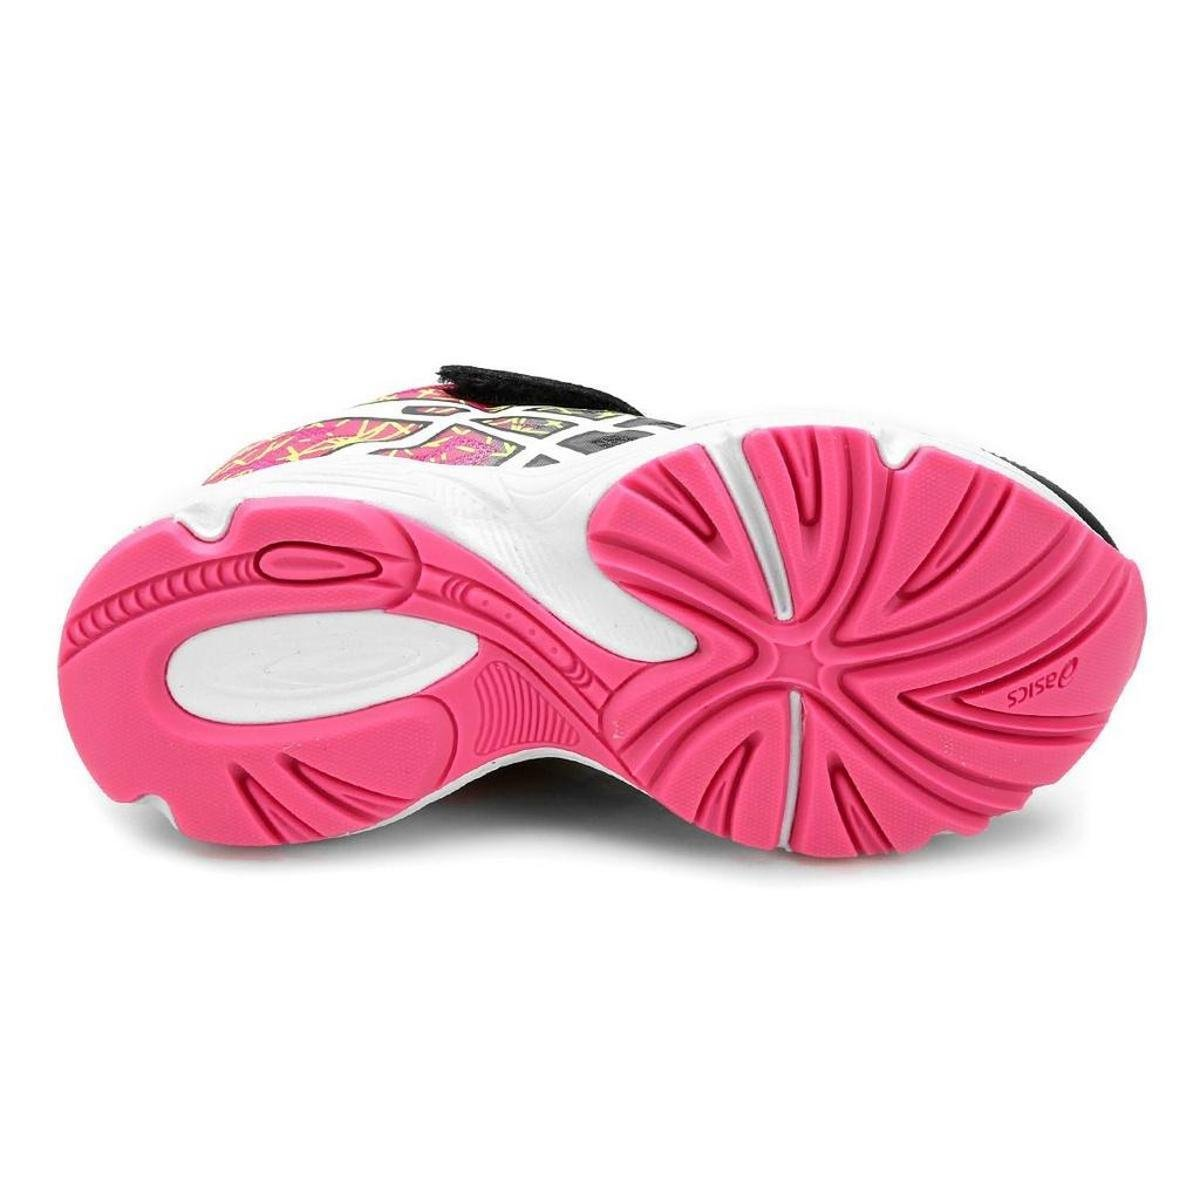 Tenis Asics Fantasy 2 PS Black/White/Knockout Pink